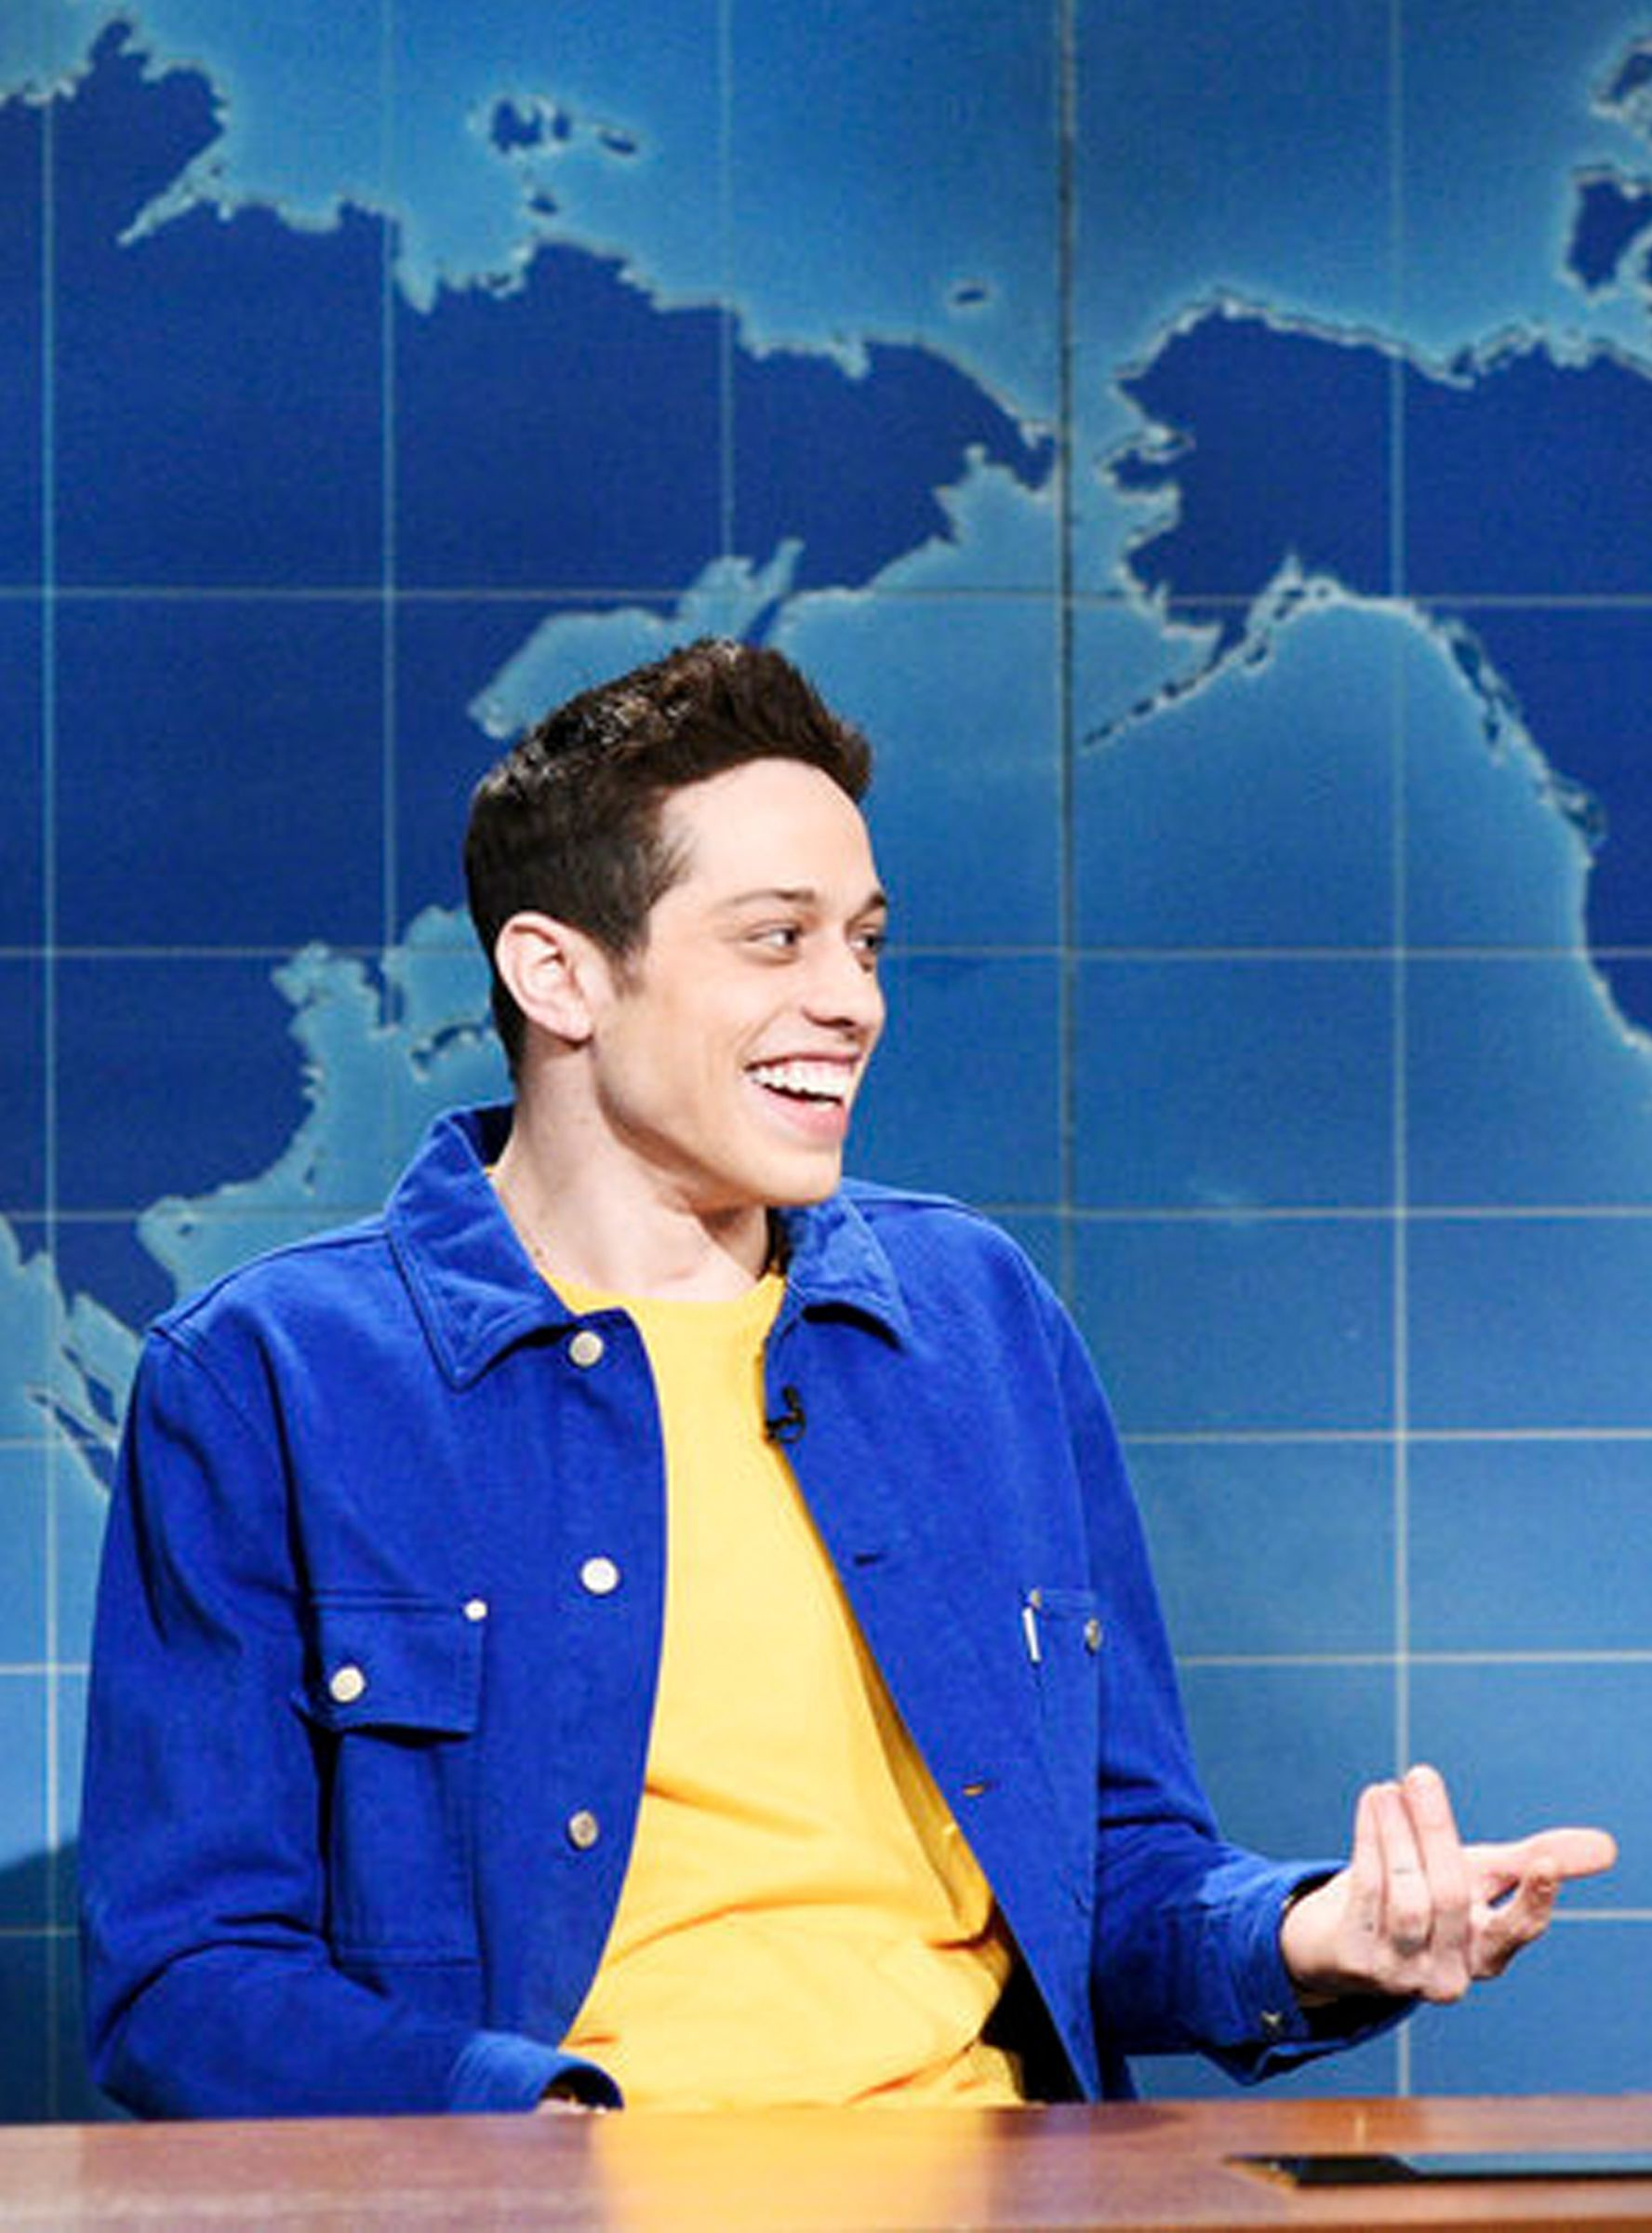 Pete Davidson Gets One Thing Right One Thing Very Wrong On Snl